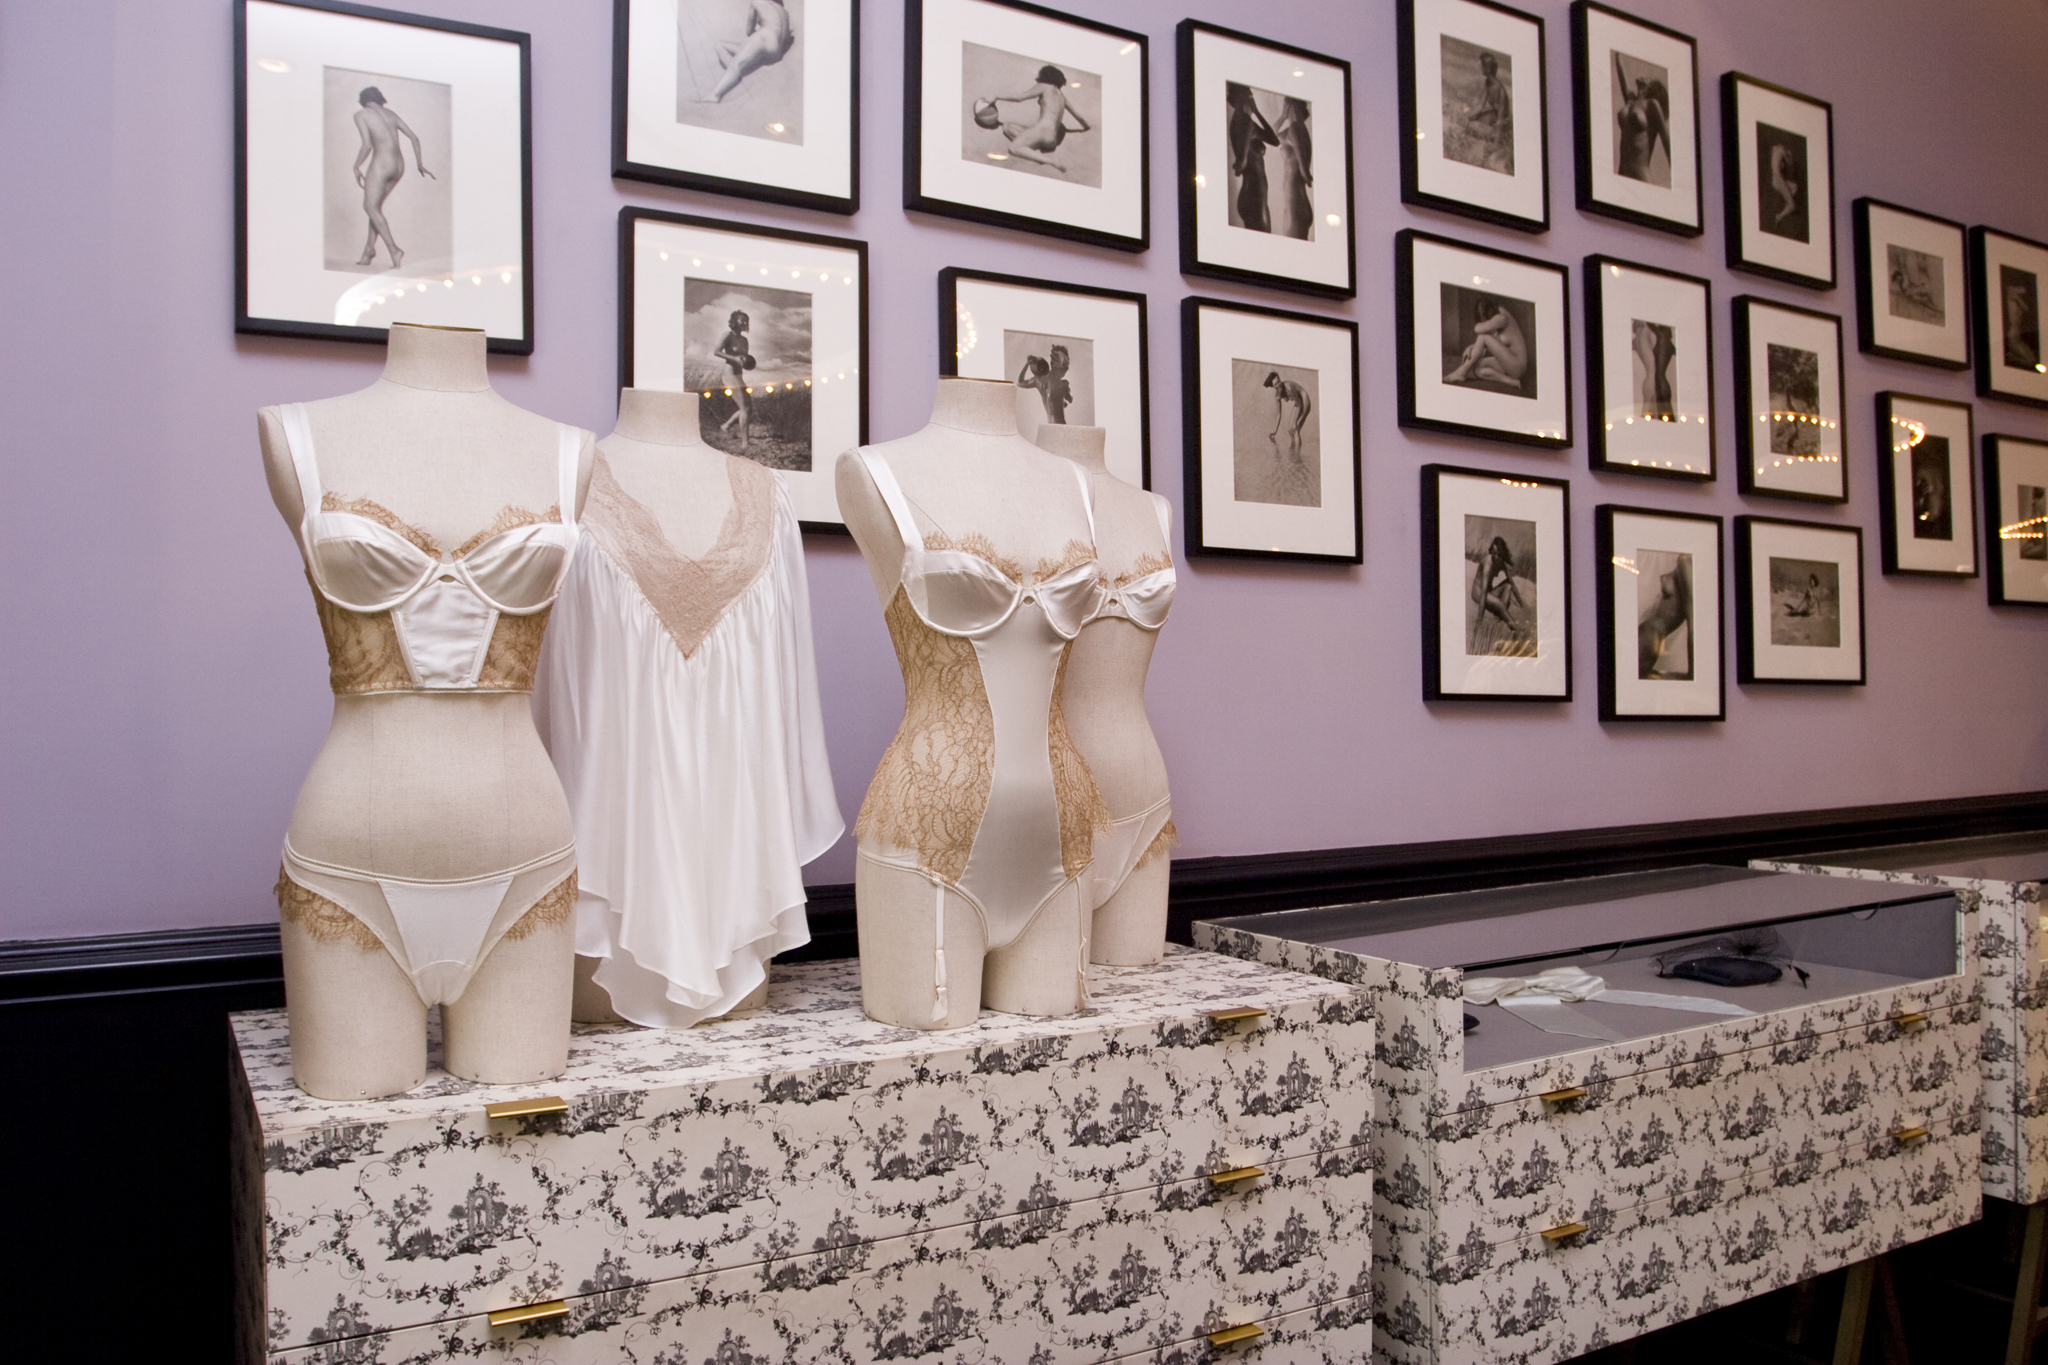 Best independent lingerie stores in NYC